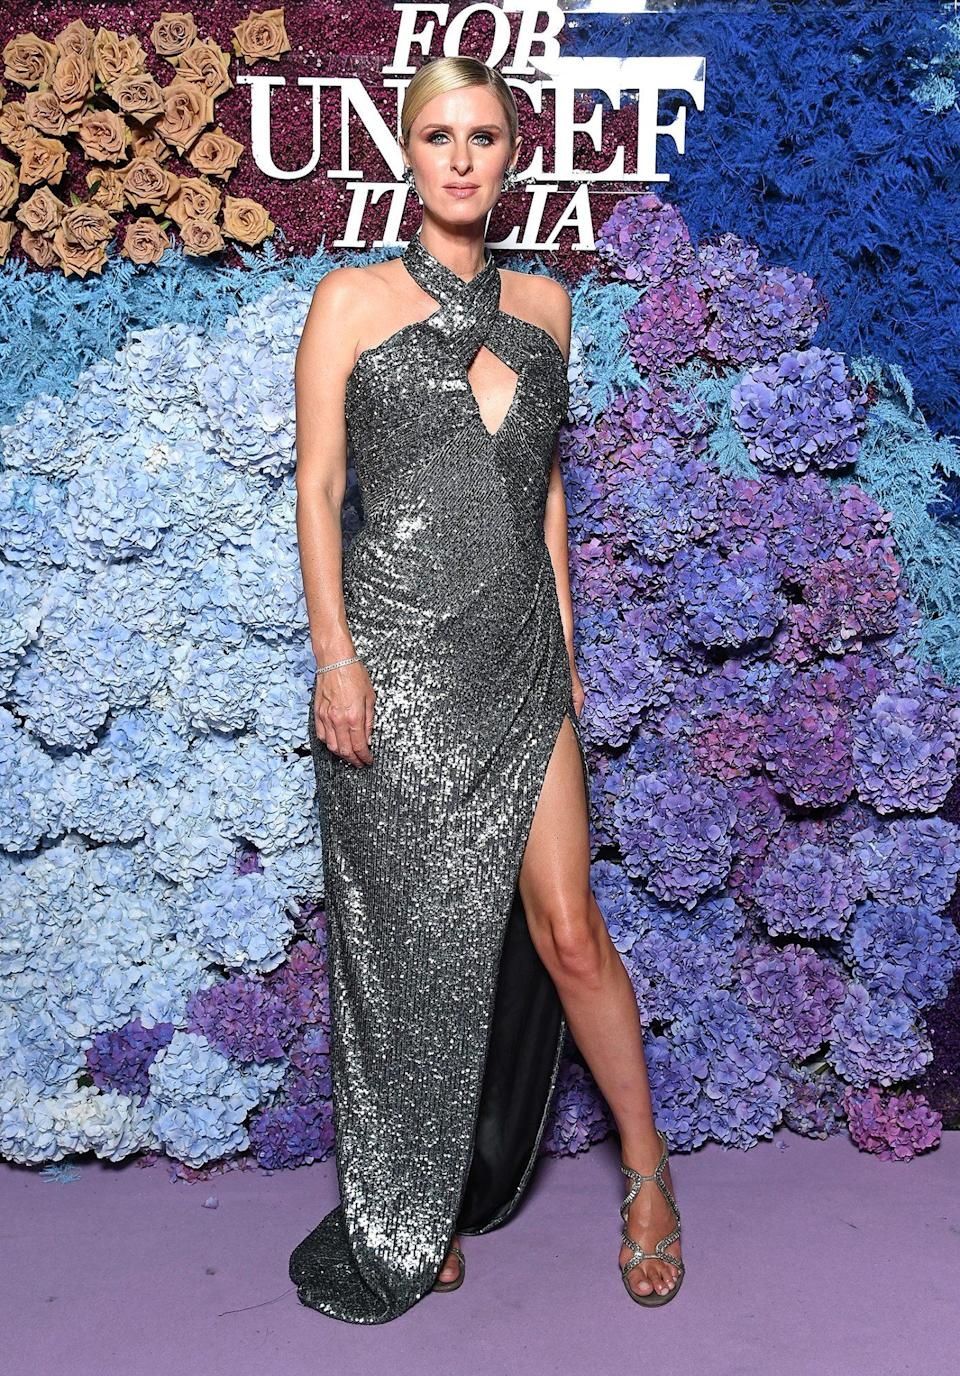 <p>shines in a metallic gunmetal halter gown with keyhole neckline, plus matching silver heels.</p>